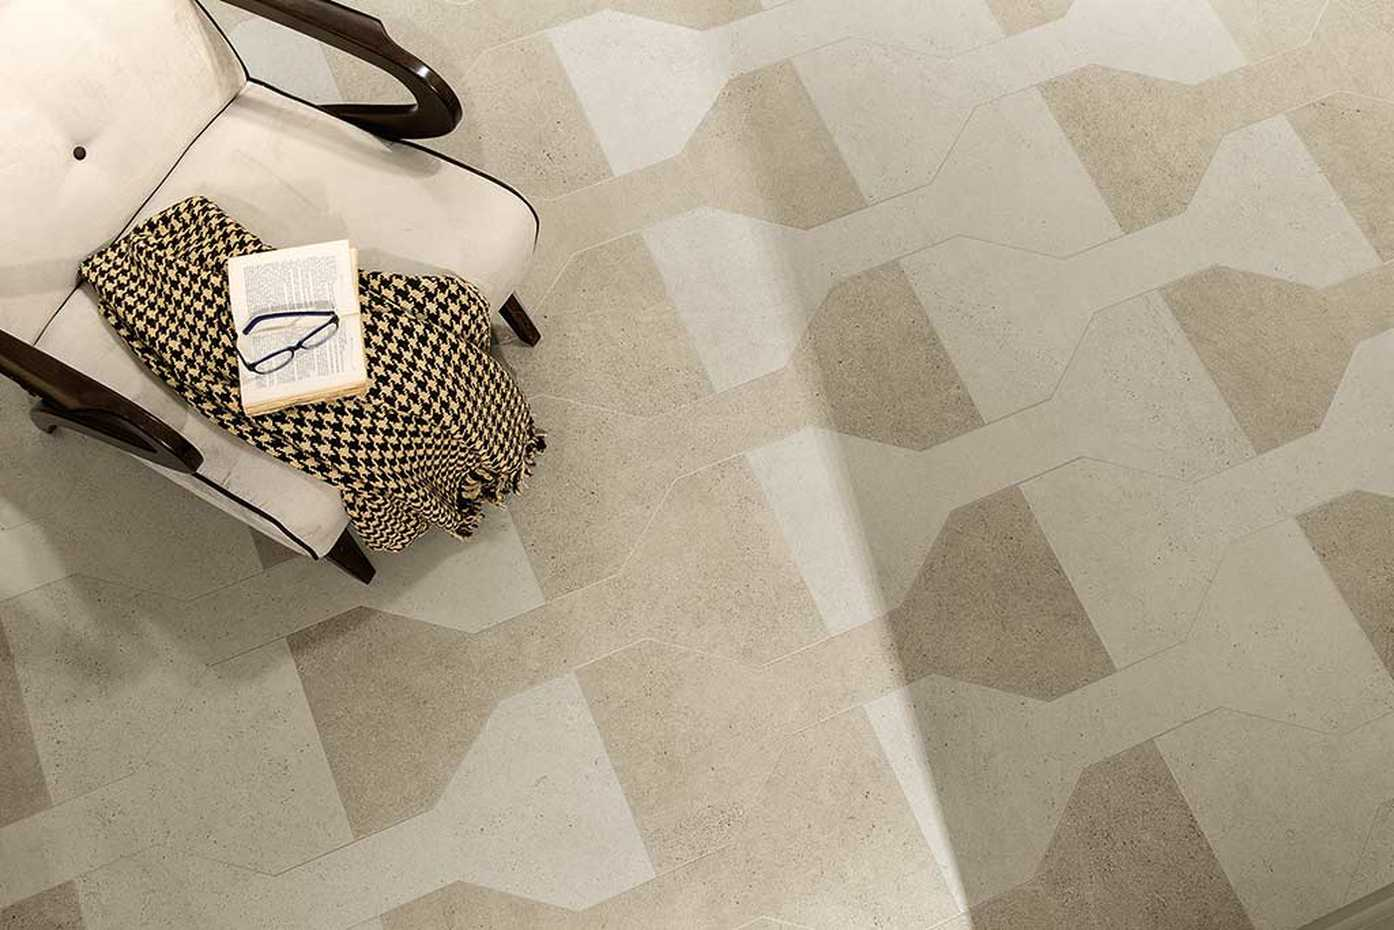 Pietre/3 by Casa Dolce Casa - Casamood product image 1